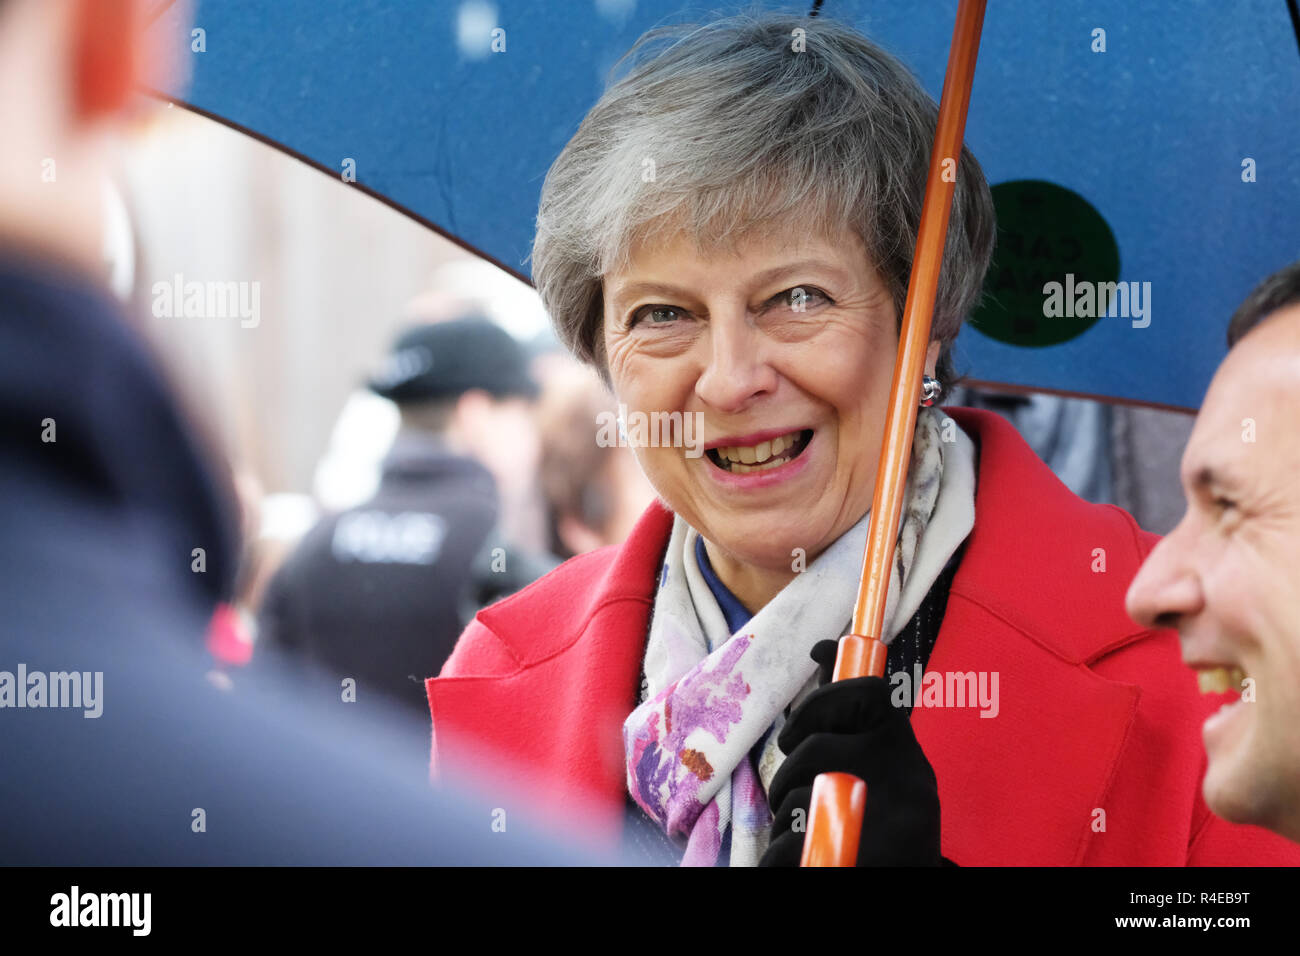 Royal Welsh Showground, Builth Wells, Powys, Wales - Tuesday 27th November 2018 - Prime Minister Theresa May visits the Royal Welsh Winter Fair in the rain as she starts her tour of the UK to sell her Brexit deal to the public across the UK - Credit: Steven May/Alamy Live News - Stock Image